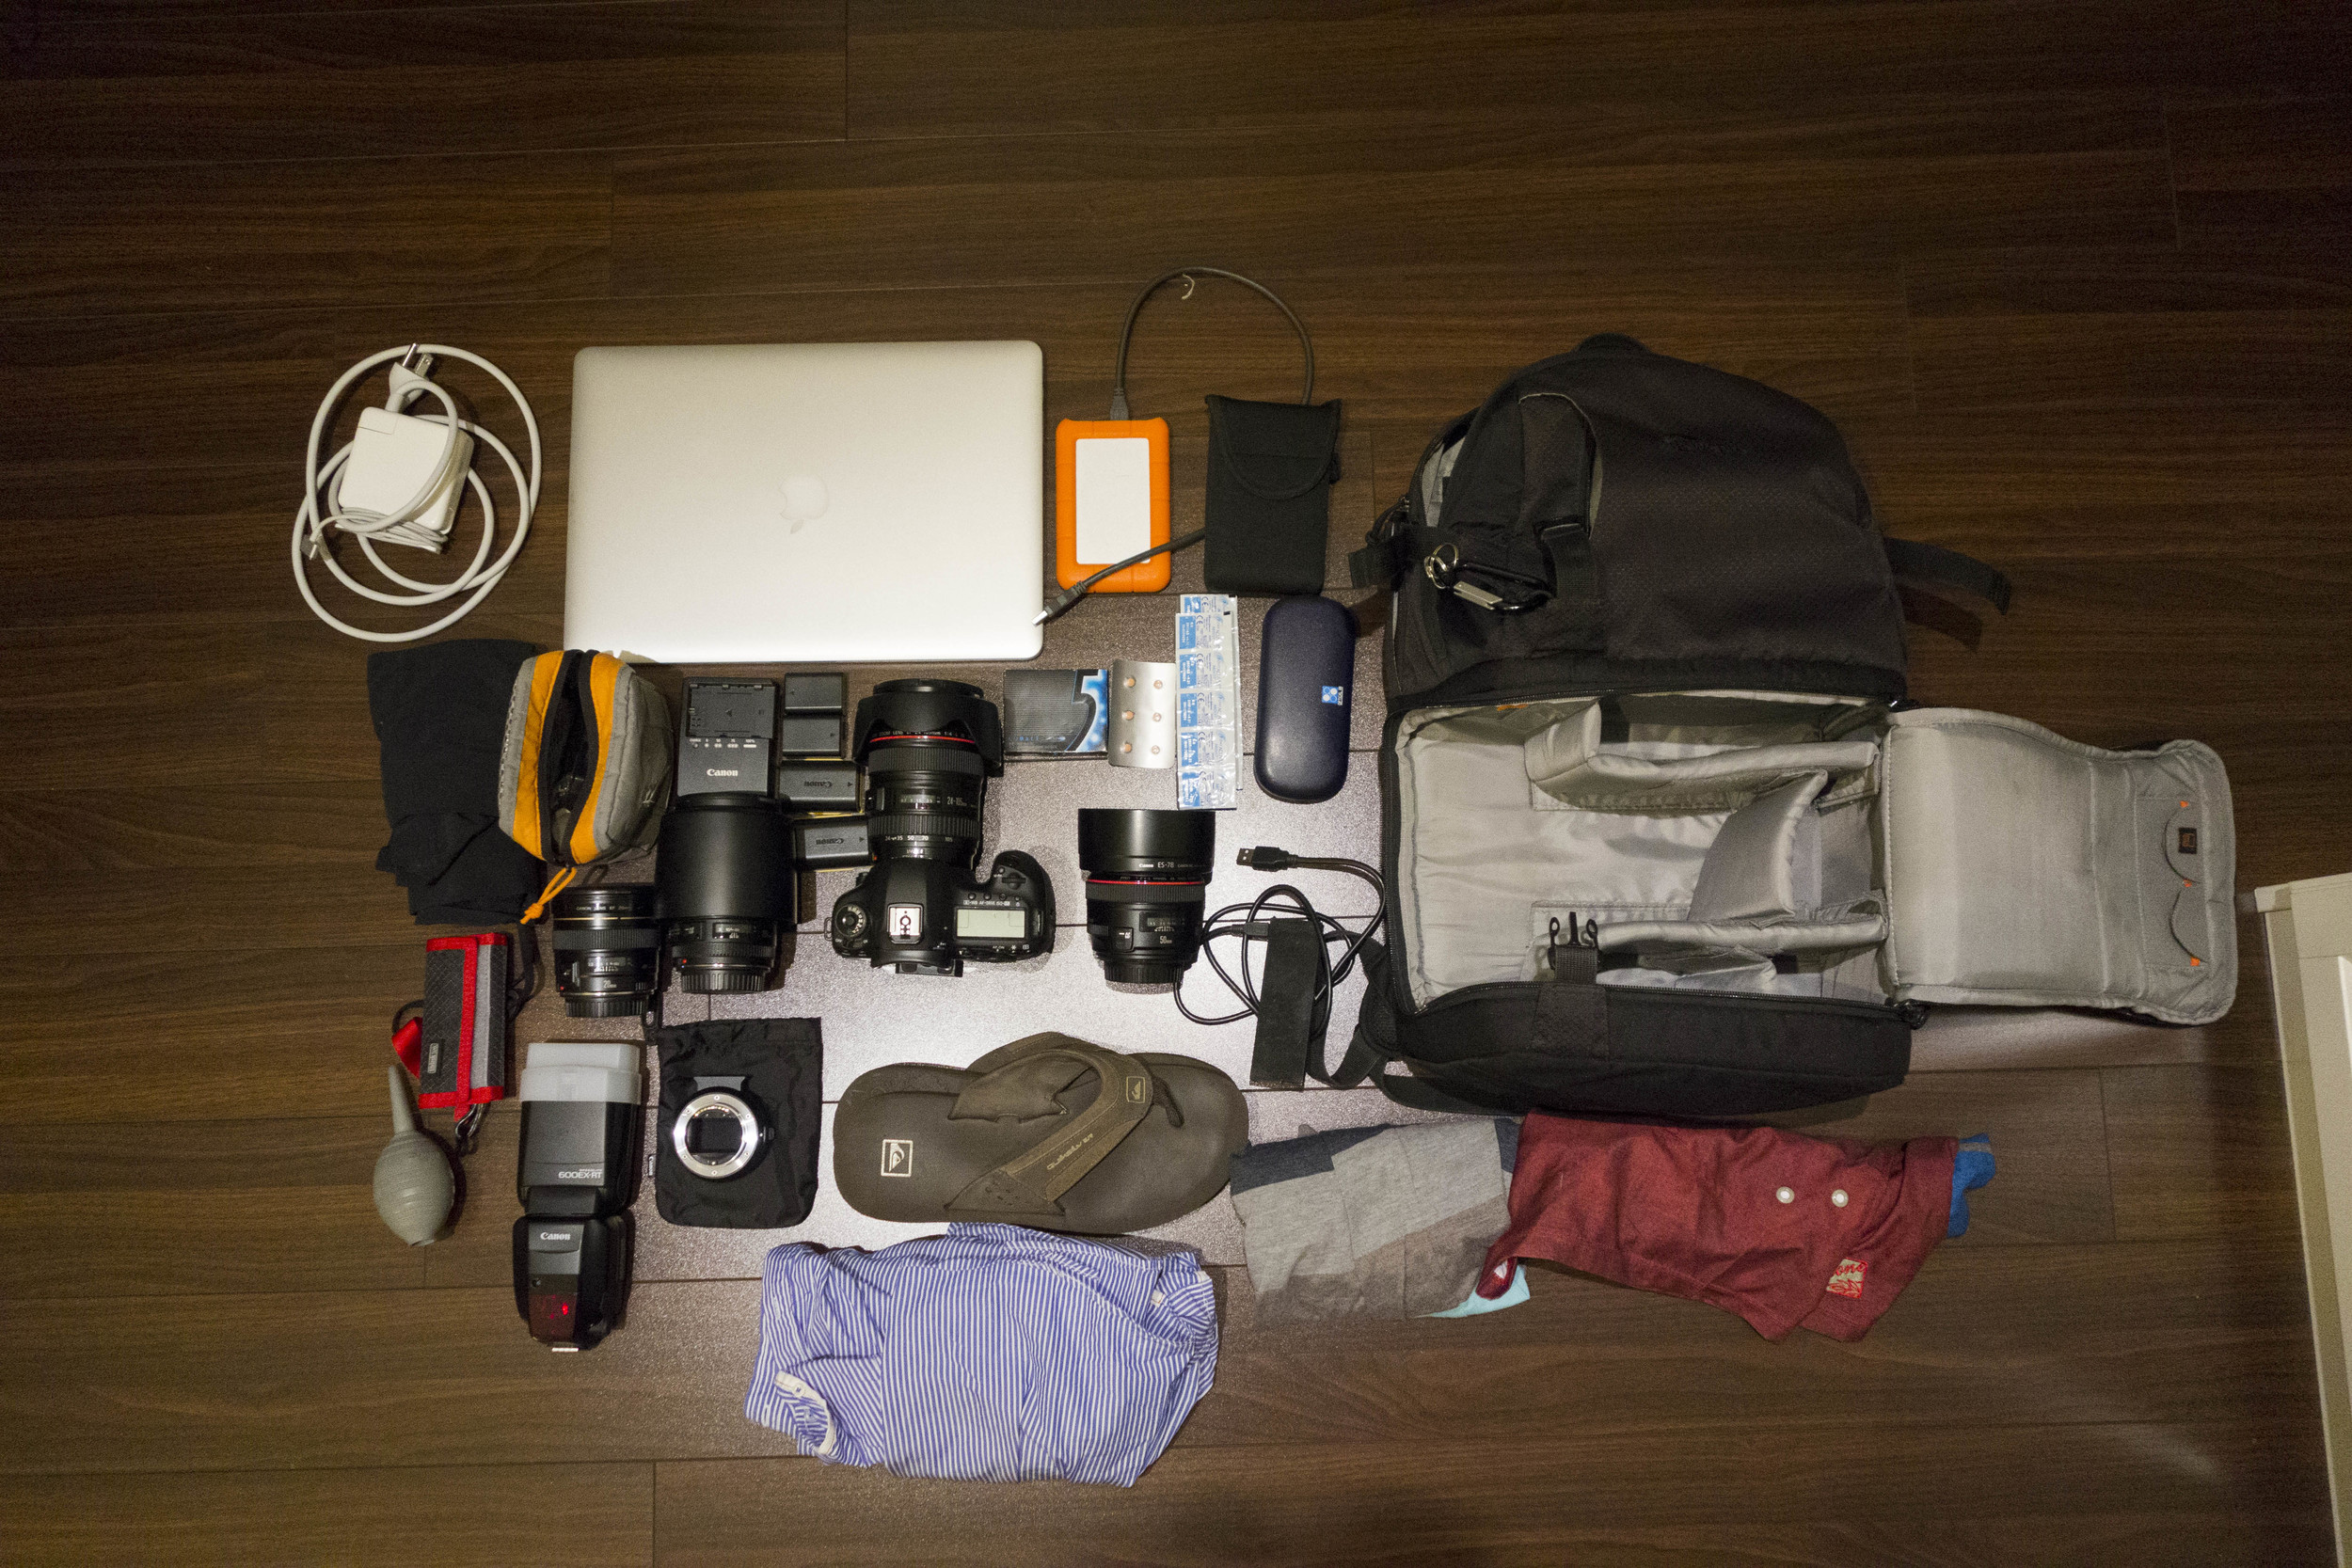 Lowepro DSLR Fastpack 250 AW  - Macbook Pro - MBP Charger - Lacie Rugged External Drive - Hyperdrive - Canon 5D Mark III - 3 Batteries - Charger - 24-105L - 50mm f1.2L - 20mm f2.8 - 135mm f2.0L - 600 EX Speedlight - Puffer - Thinktank Card pouch with extra CF and SD cards - Card reader - 2 Sony A7 batteries - Glasses - Pepcid AC - Contacts - 2 Shirts - 2 Shorts - Sandals